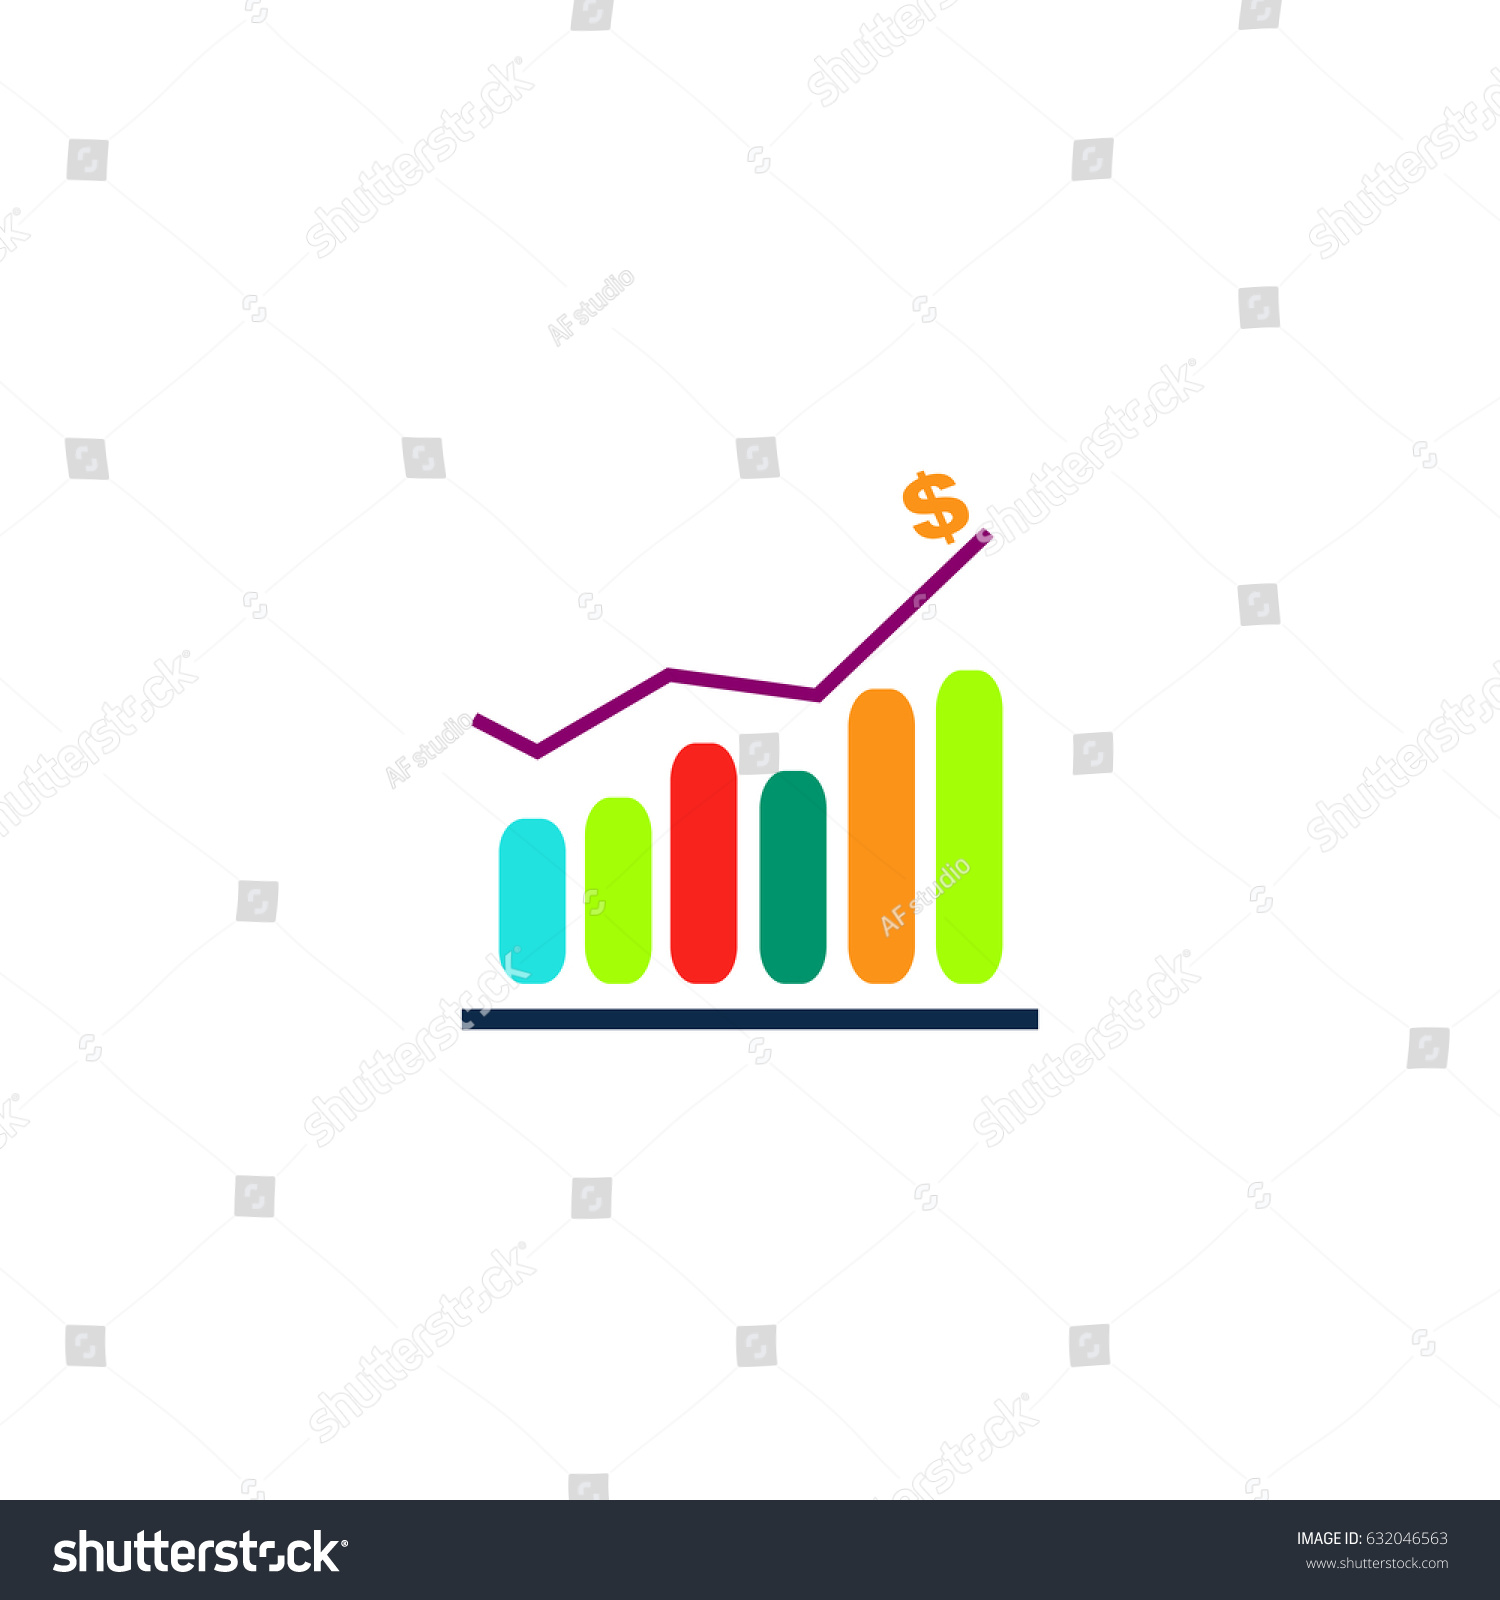 Diagram icon illustration flat color pictogram stock illustration diagram icon illustration flat color pictogram stock illustration 632046563 shutterstock ccuart Image collections